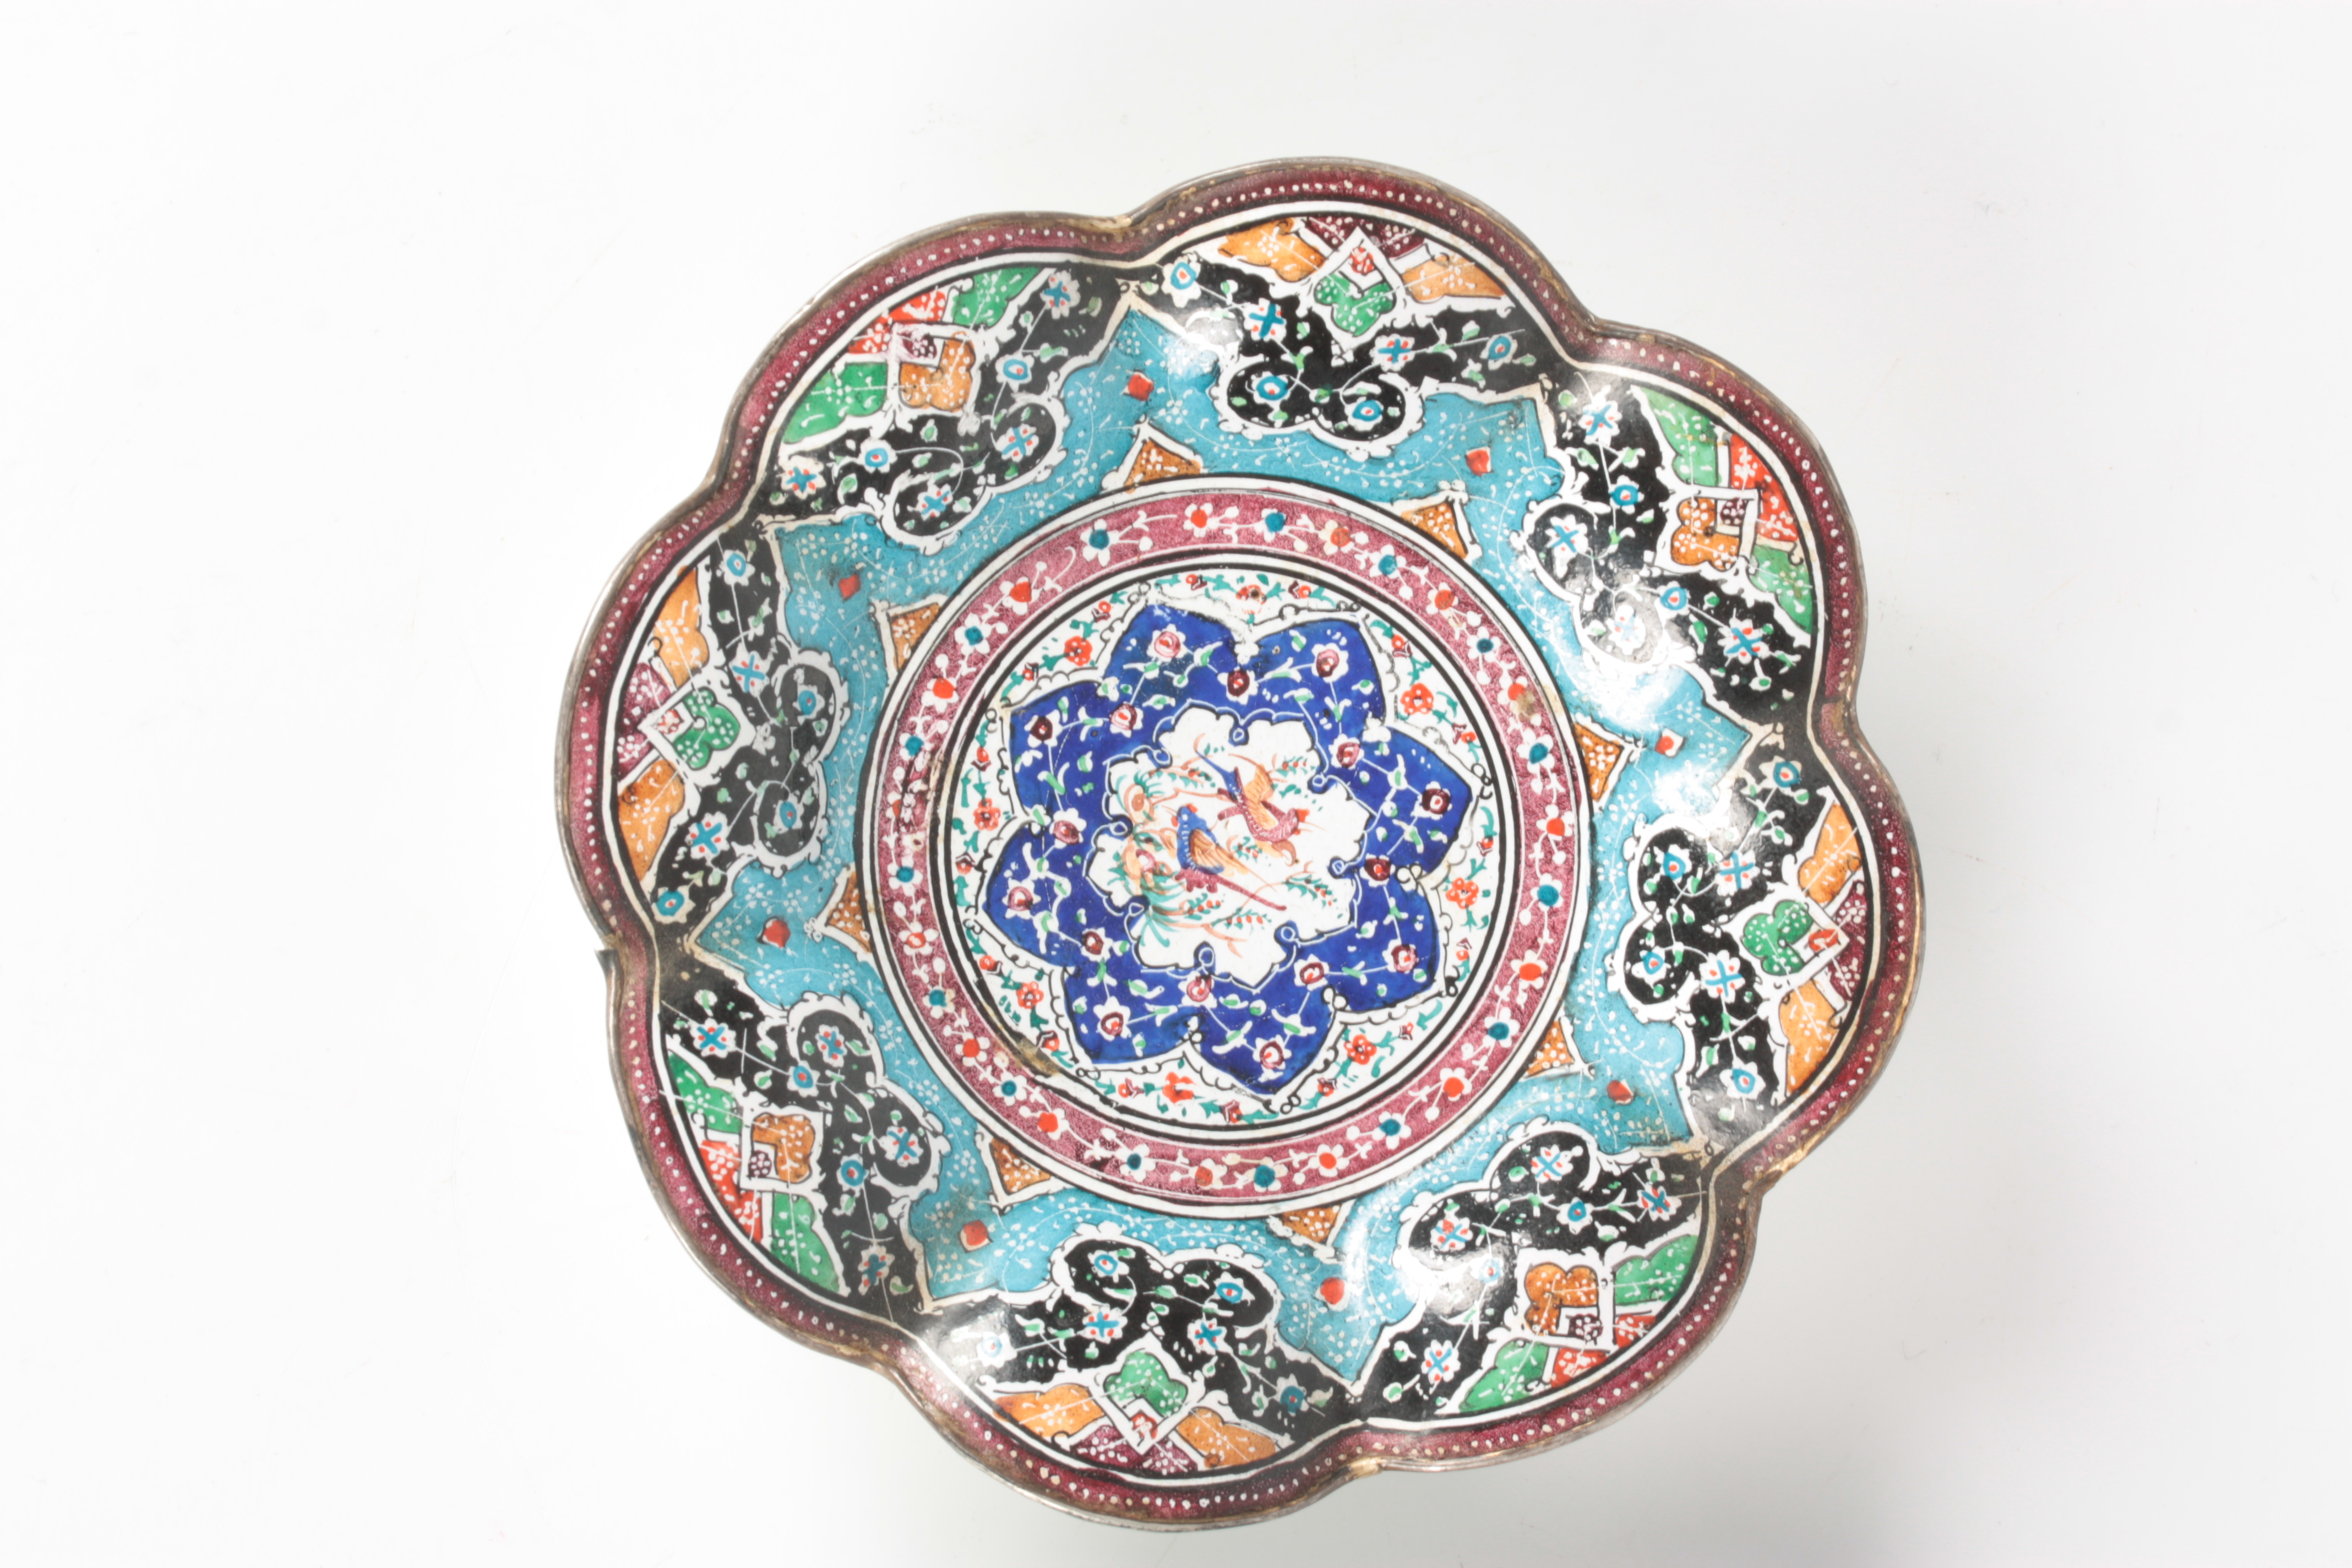 TWO 19TH CENTURY ISNIC ENAMELED DISHES having scalloped edges with birds, flowers, and geometric - Image 2 of 6